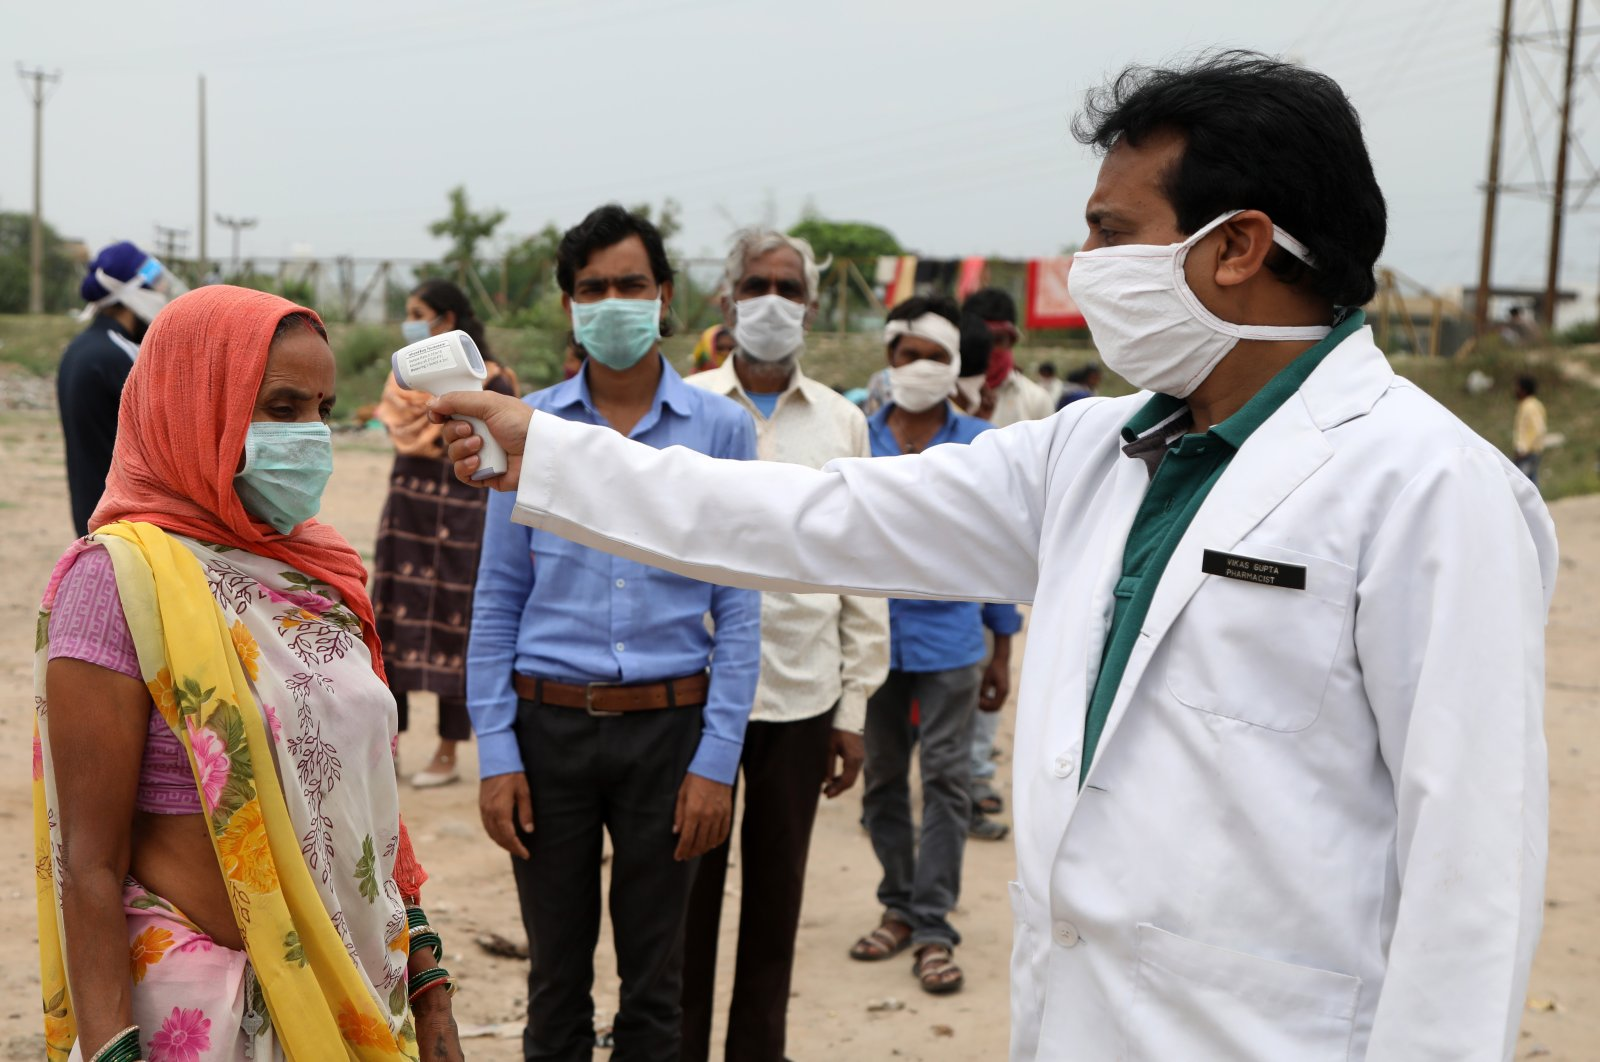 A health worker checks the body temperature of migrant laborers from Chhattisgarh state before sending them to their hometowns after they were stranded in an open area, in Jammu, India, June 11, 2020. (EPA Photo)